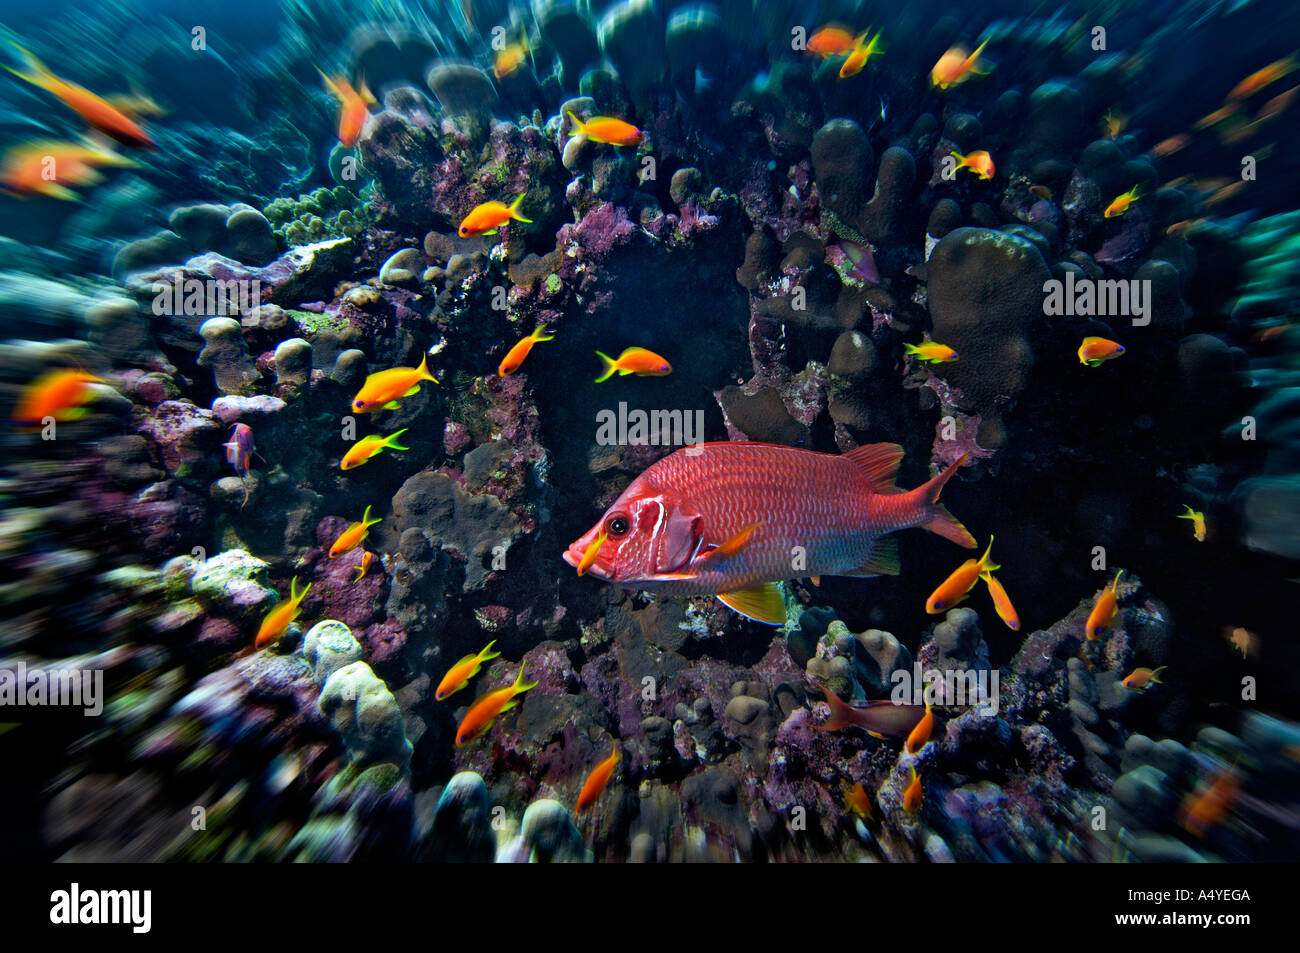 Middle East Egypt Red Sea, Basslets Anthiinae and Long jawed Squirrelfish, Sargocentron spiniferum - Stock Image